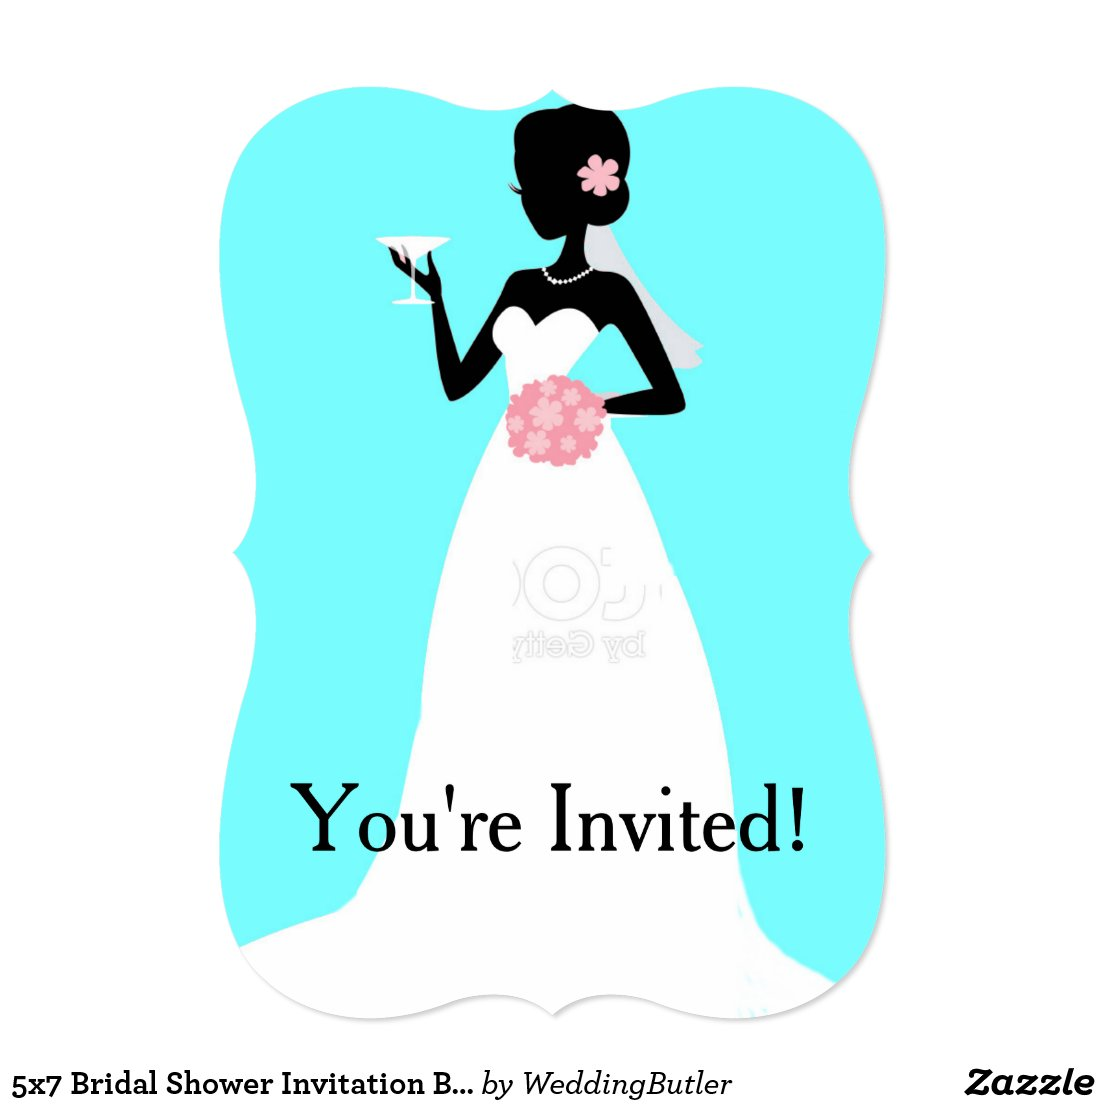 5x7 Bridal Shower Invitation Bracket